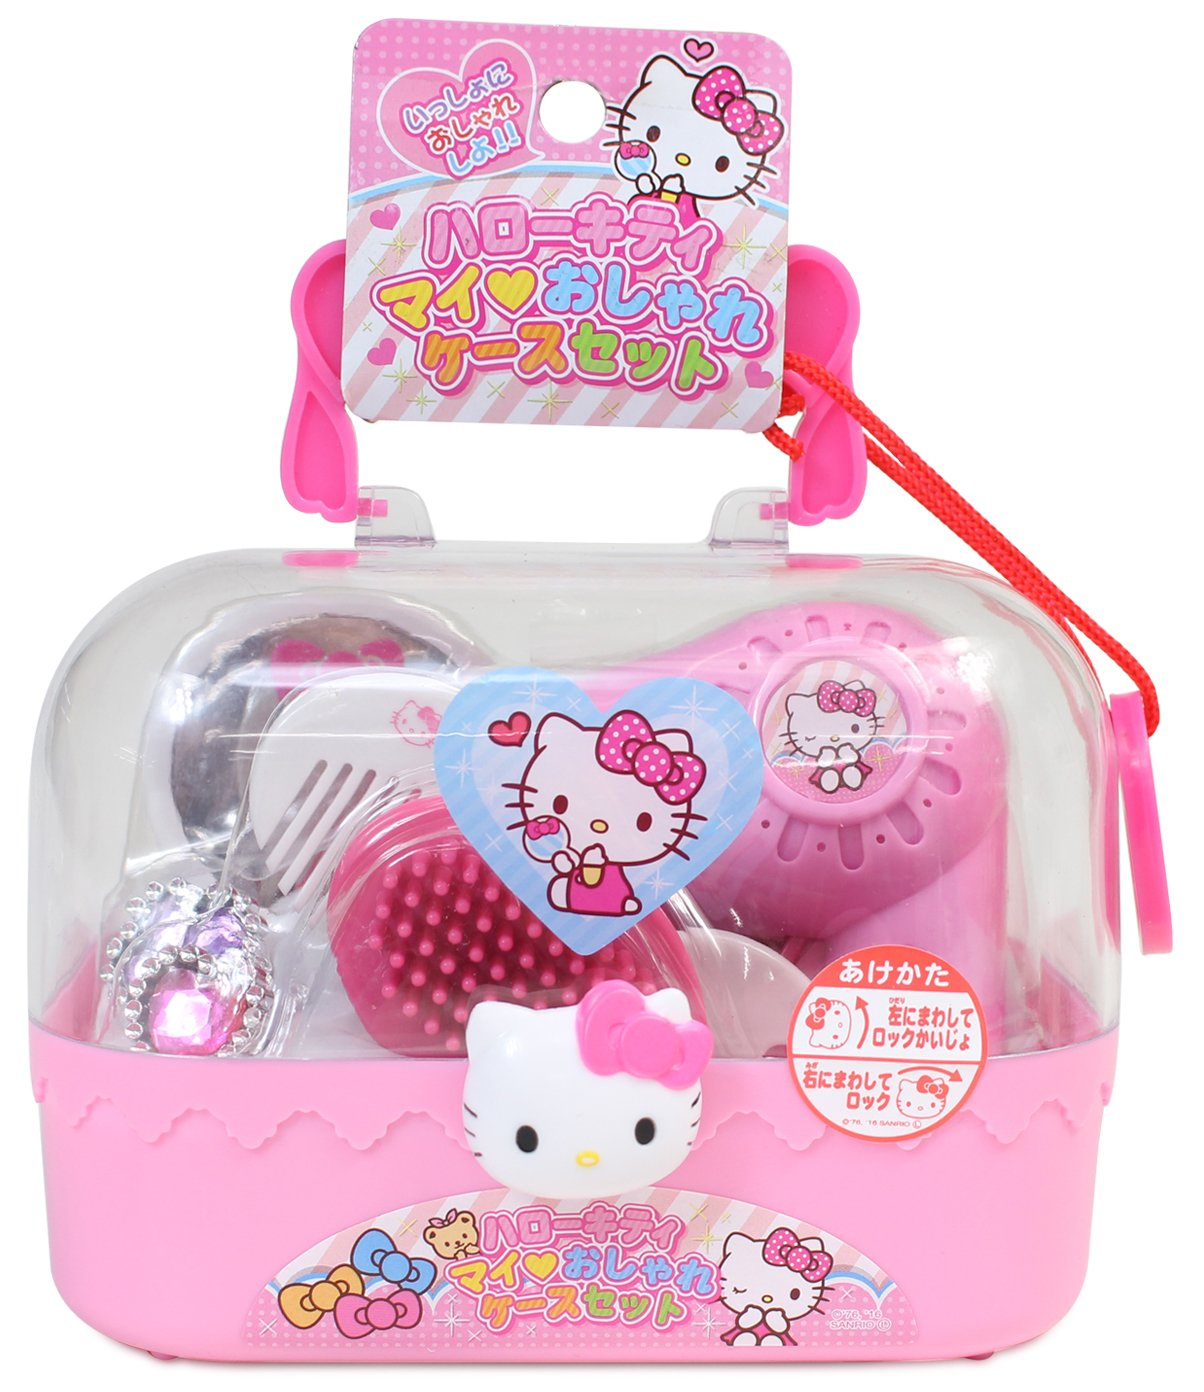 6d44f8bea Amazon.com: Hello Kitty Pink Styling Case with Various Beauty Accessories ( Japan Import): Toys & Games